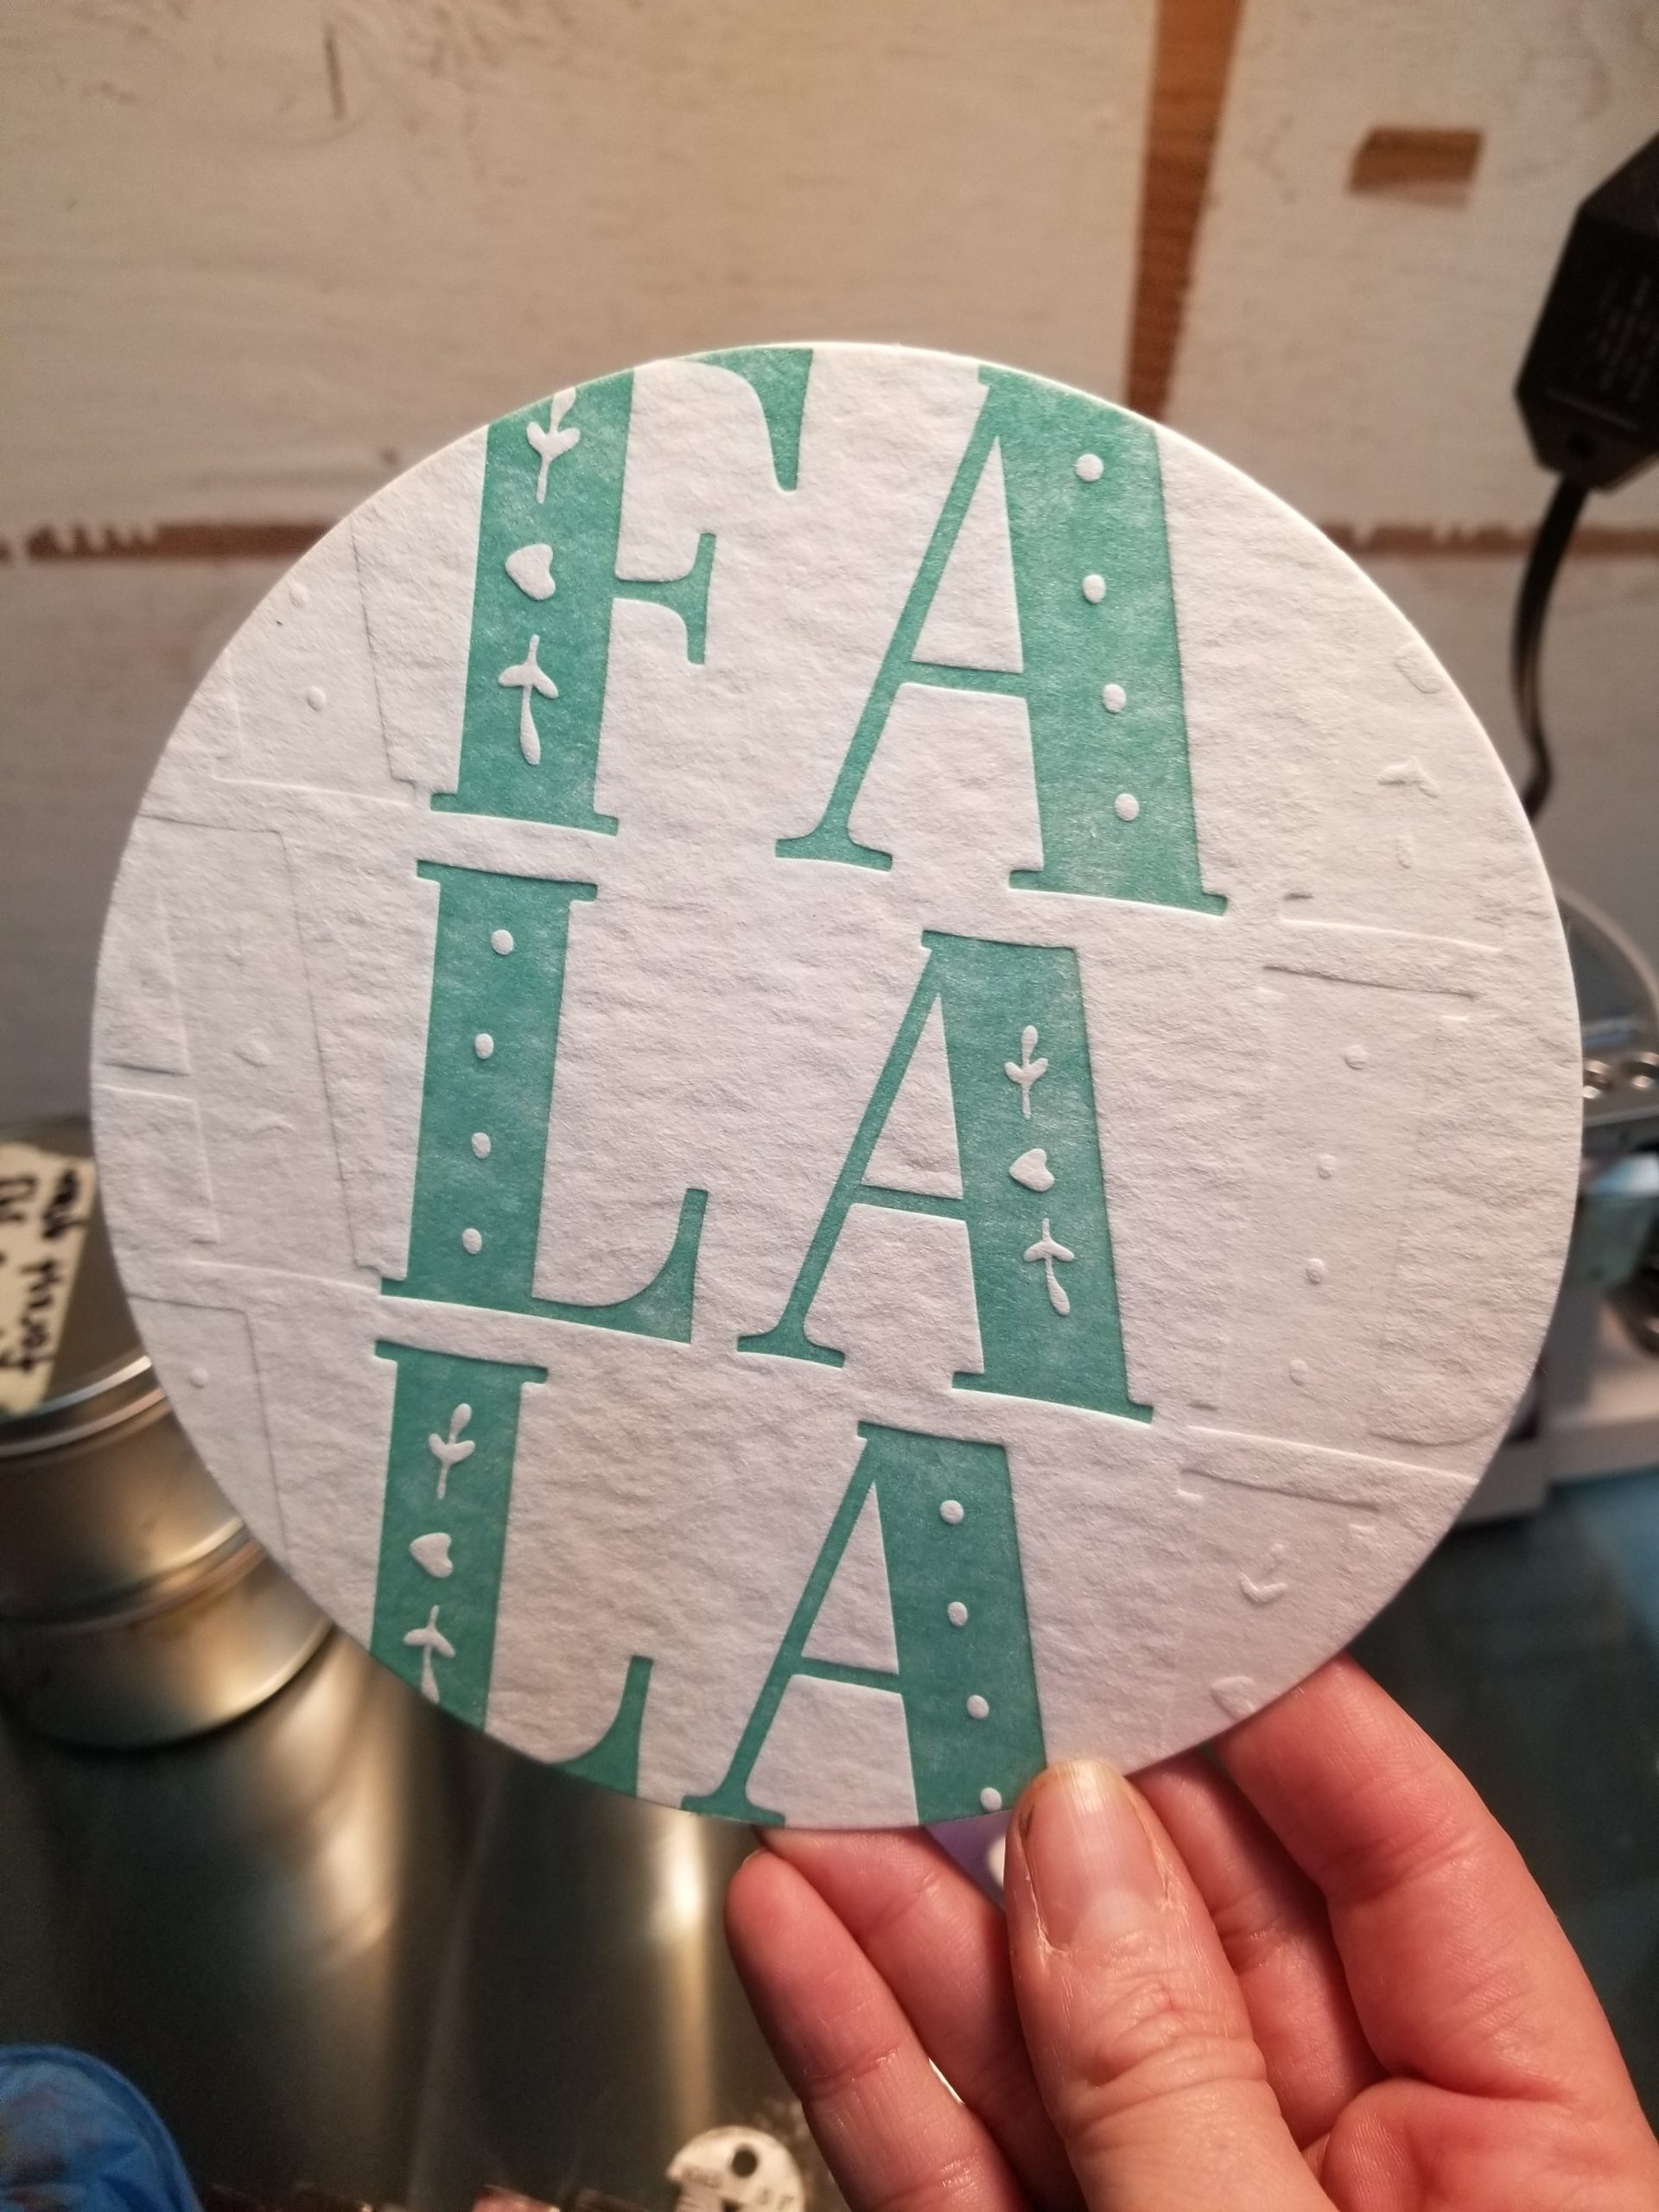 Photo shows a 6 inch diecut circle with the words FA LA LA printed in teal, down a row. There is a blind deboss to the left and right of the word, featuring the same text.